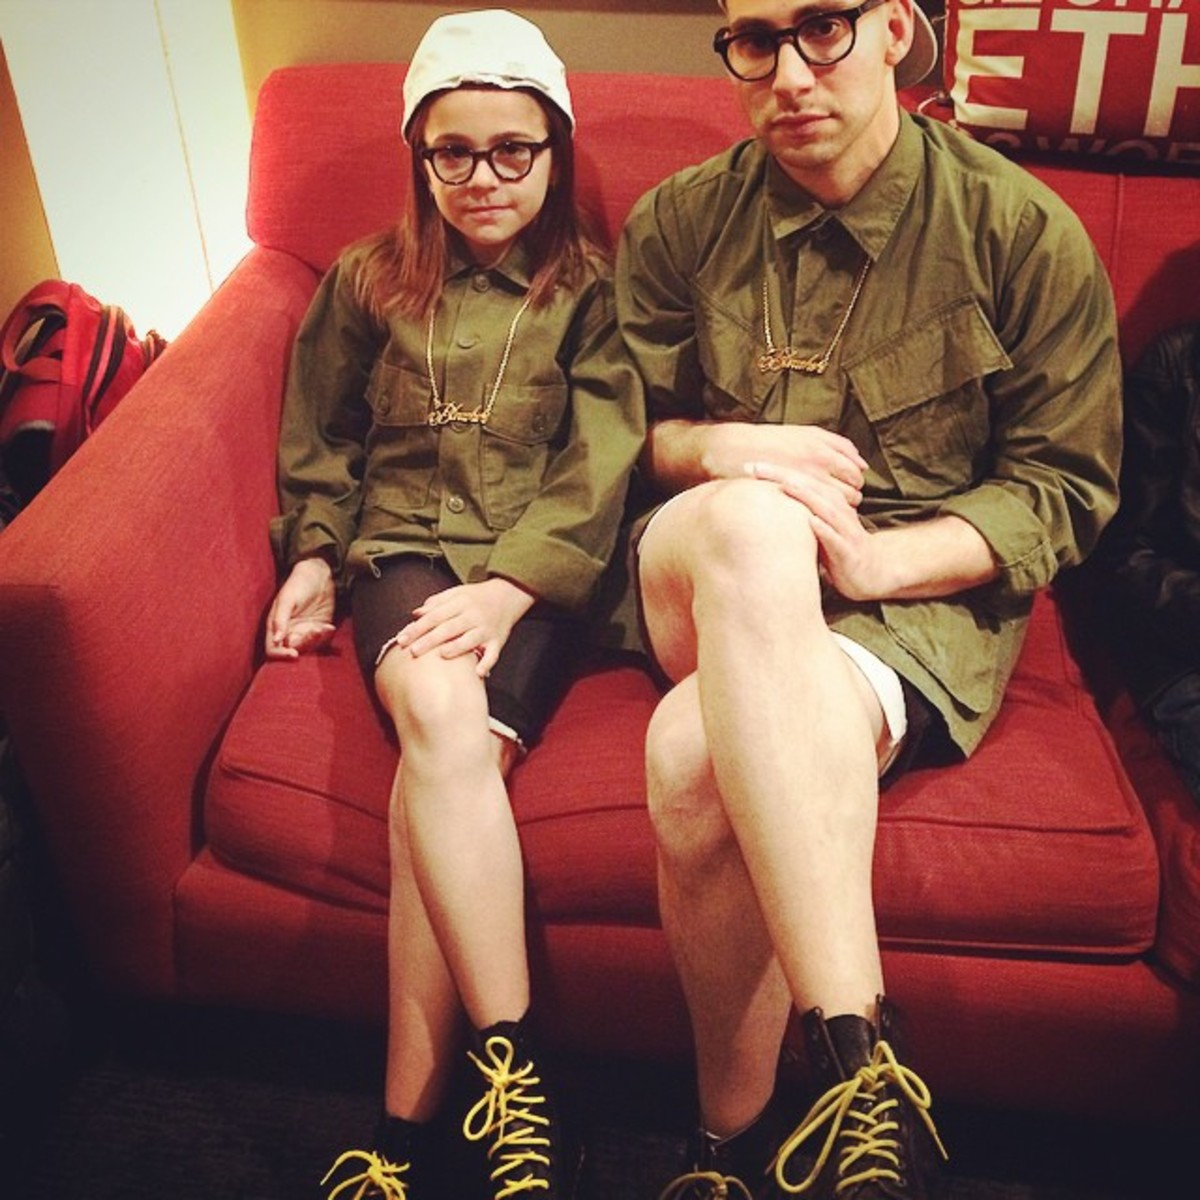 Jack Antonoff and young friend at Conan show